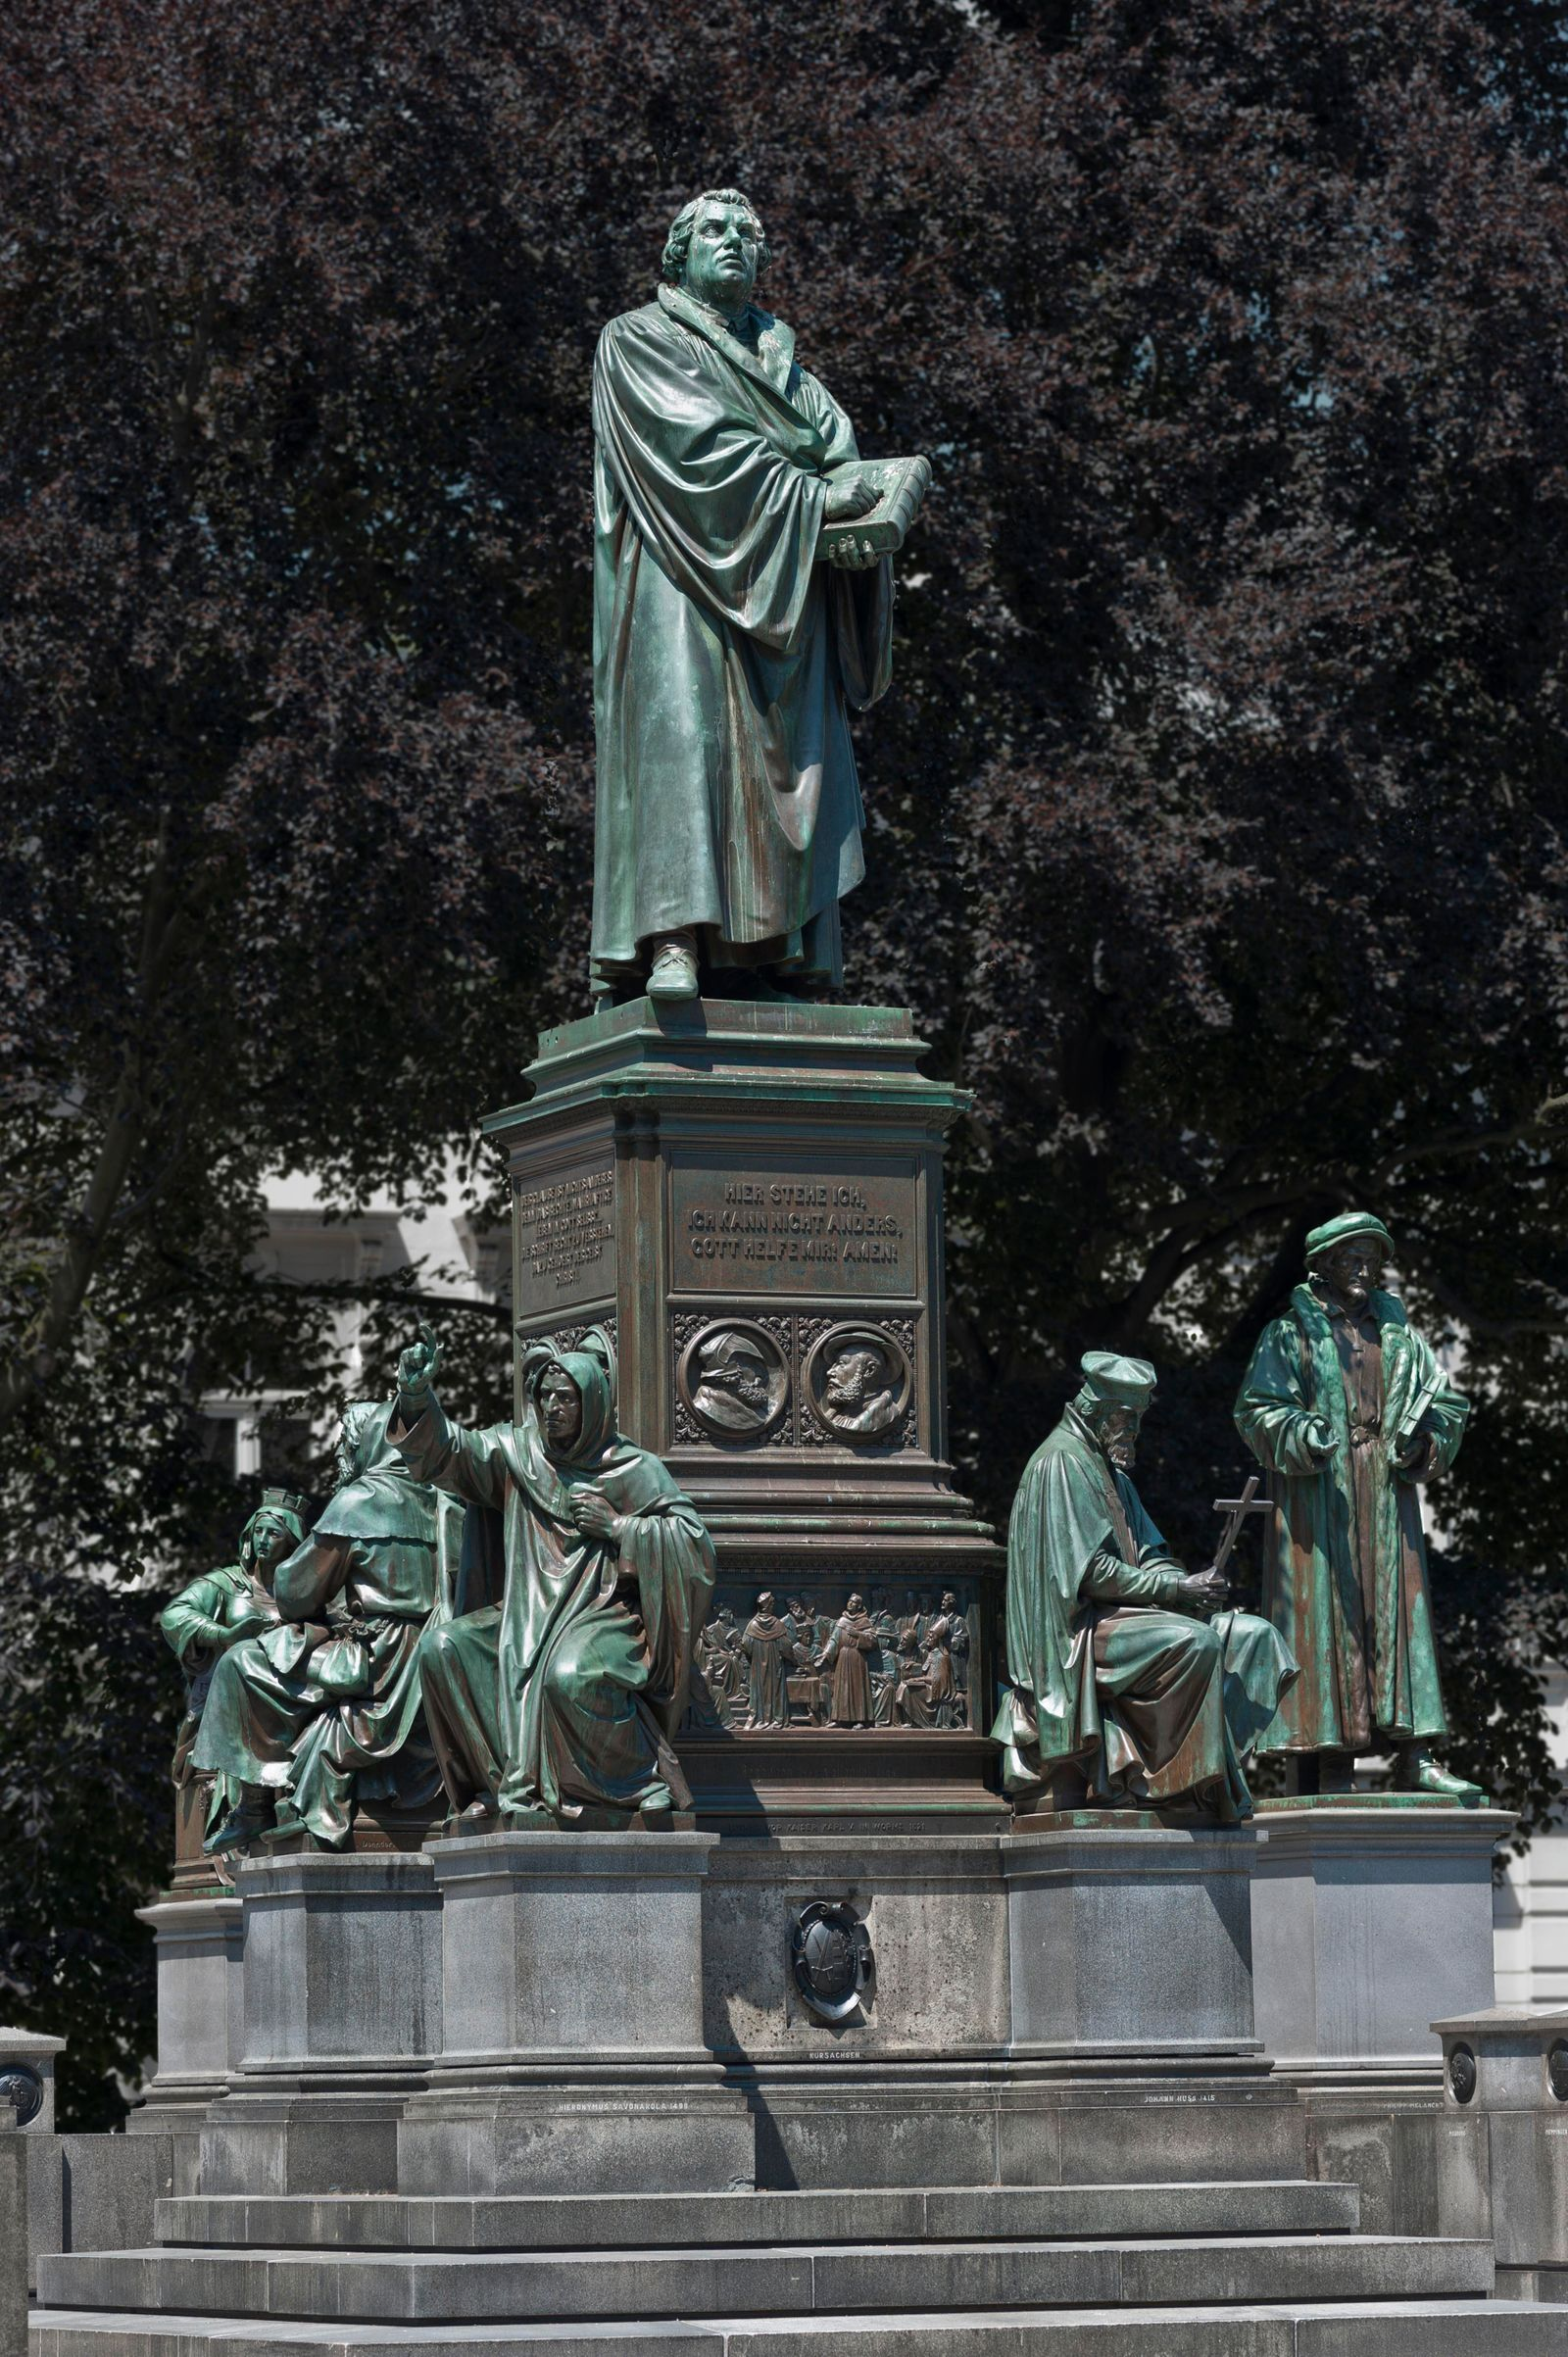 Luther Memorial, or Reformation Monument, detail, middle part depicting Martin Luther, 1868, design by Ernst Rietschel, Worms, Rhineland-Palatinate, Germany, Europe